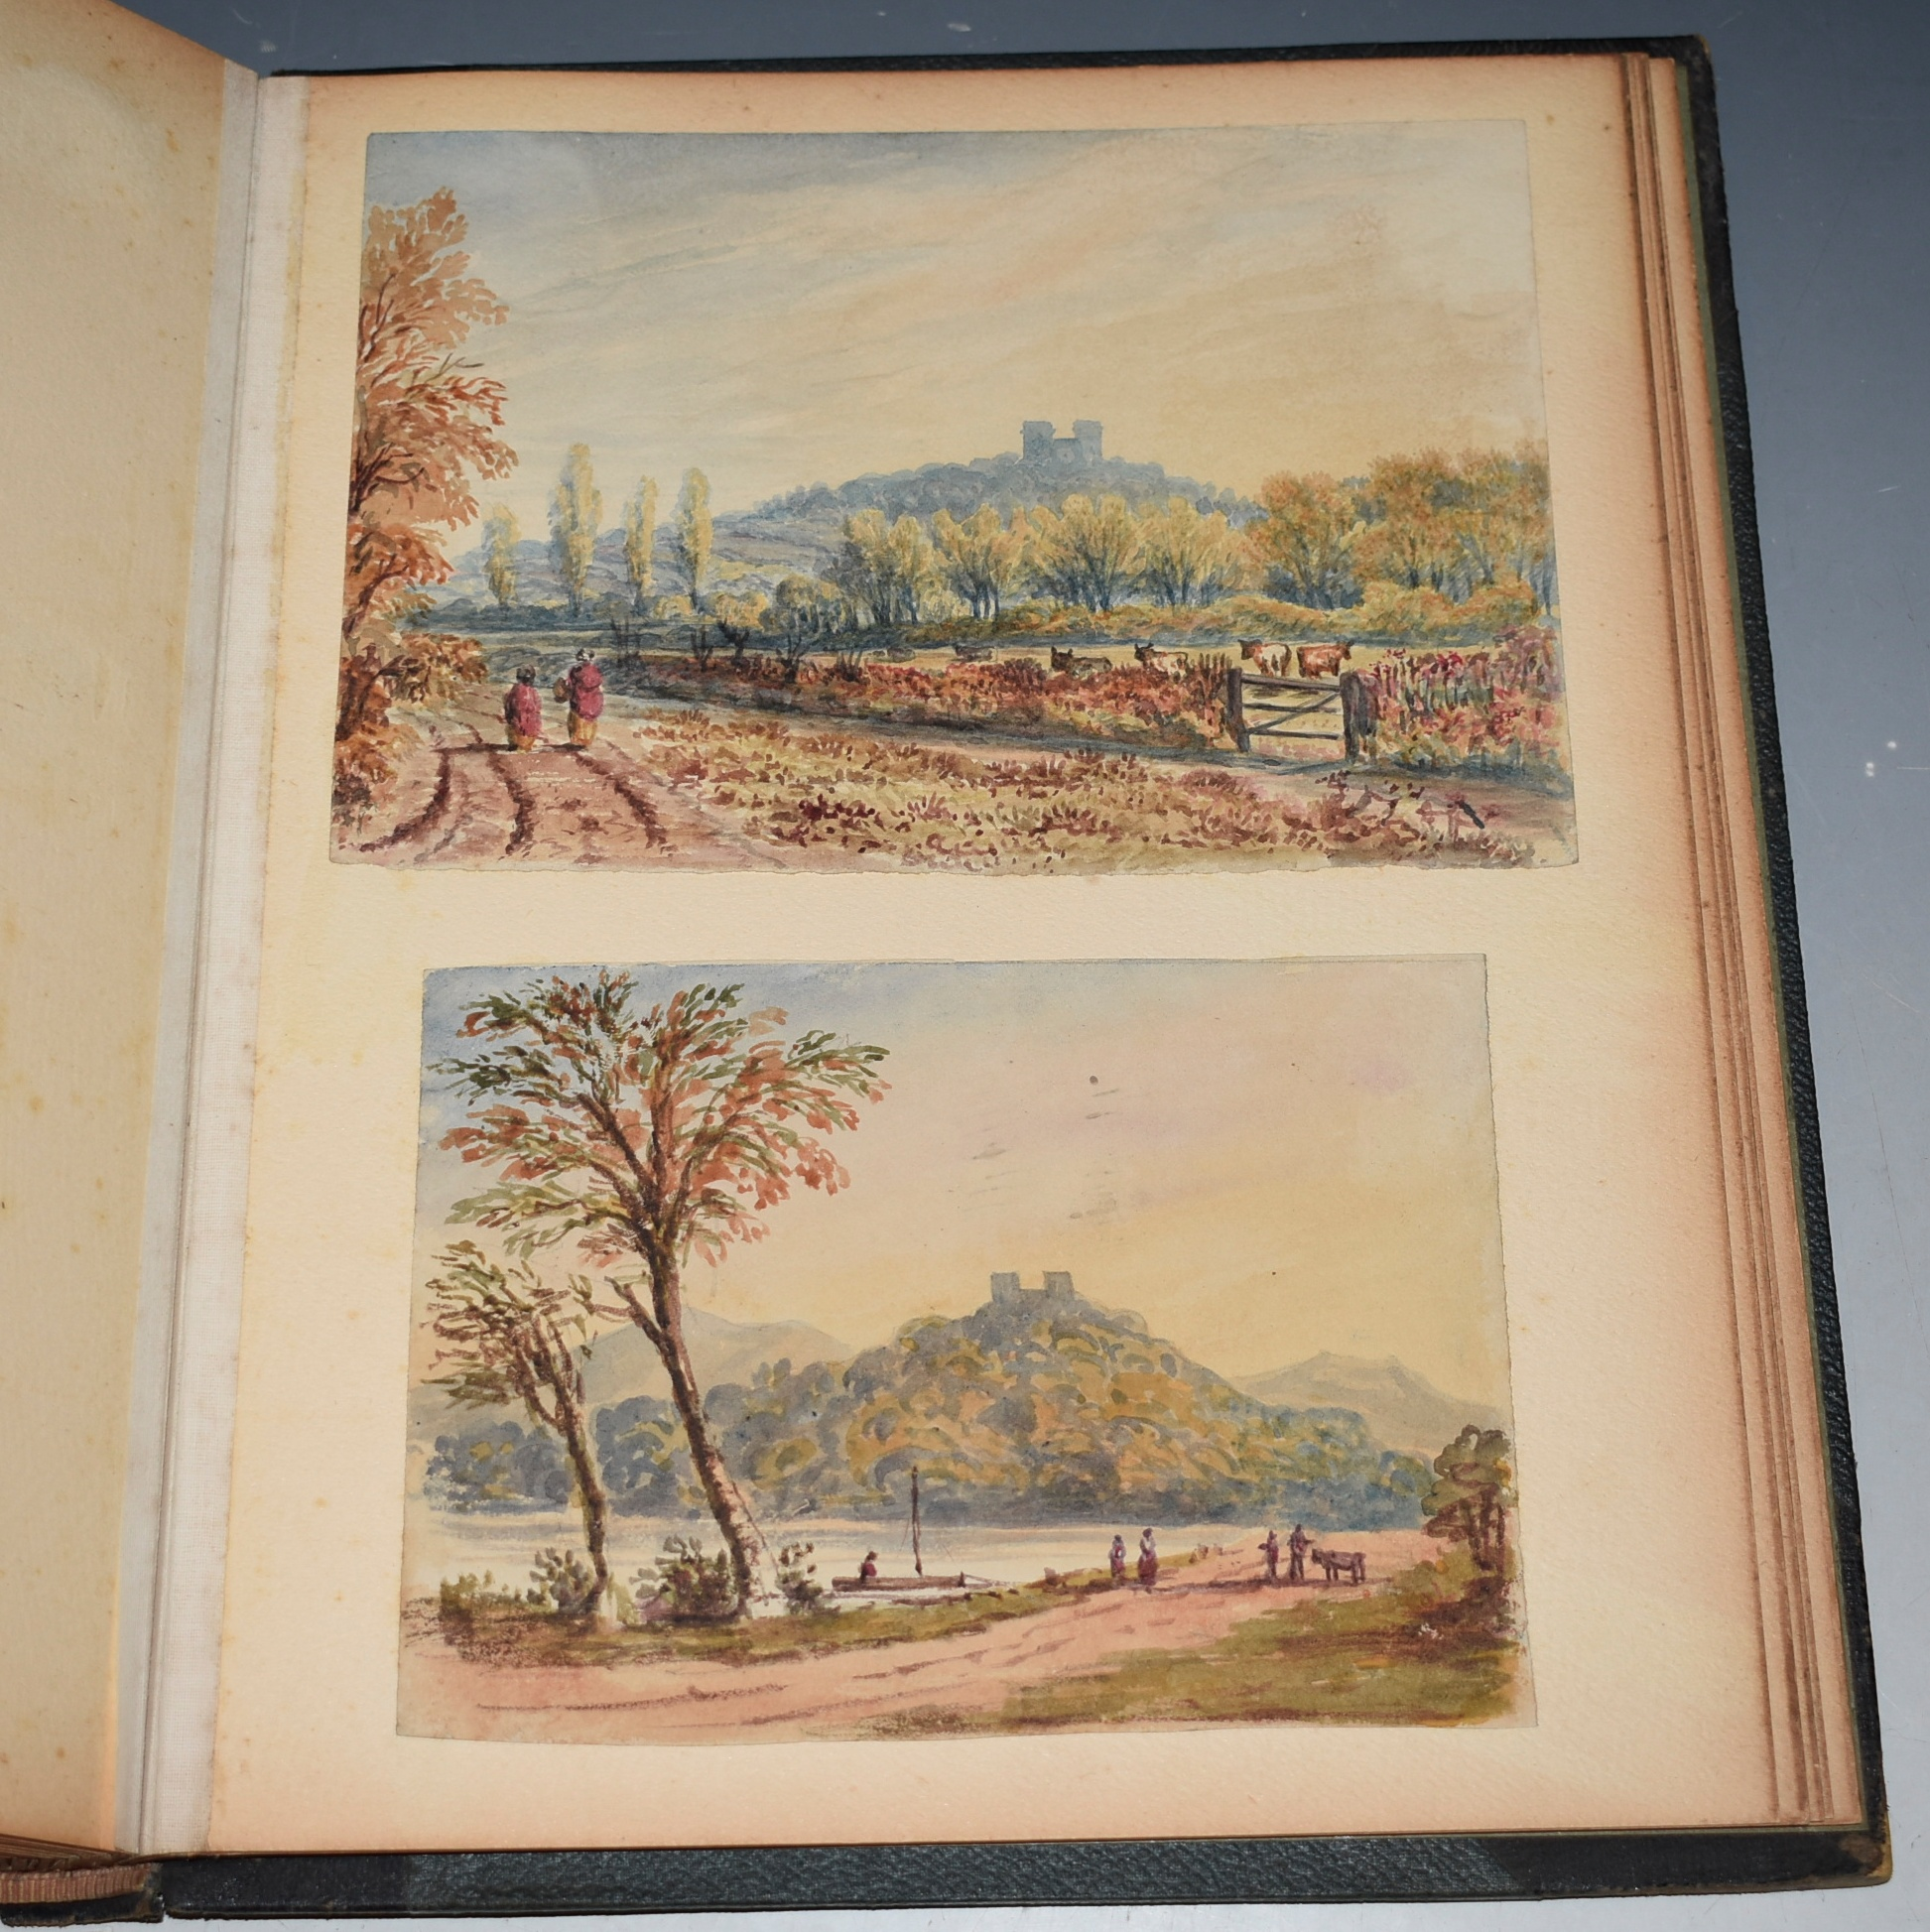 Image for Album of Original Artworks Mid-Victorian Album Collection of Original Pencil and Watercolour Drawings and Paintings.